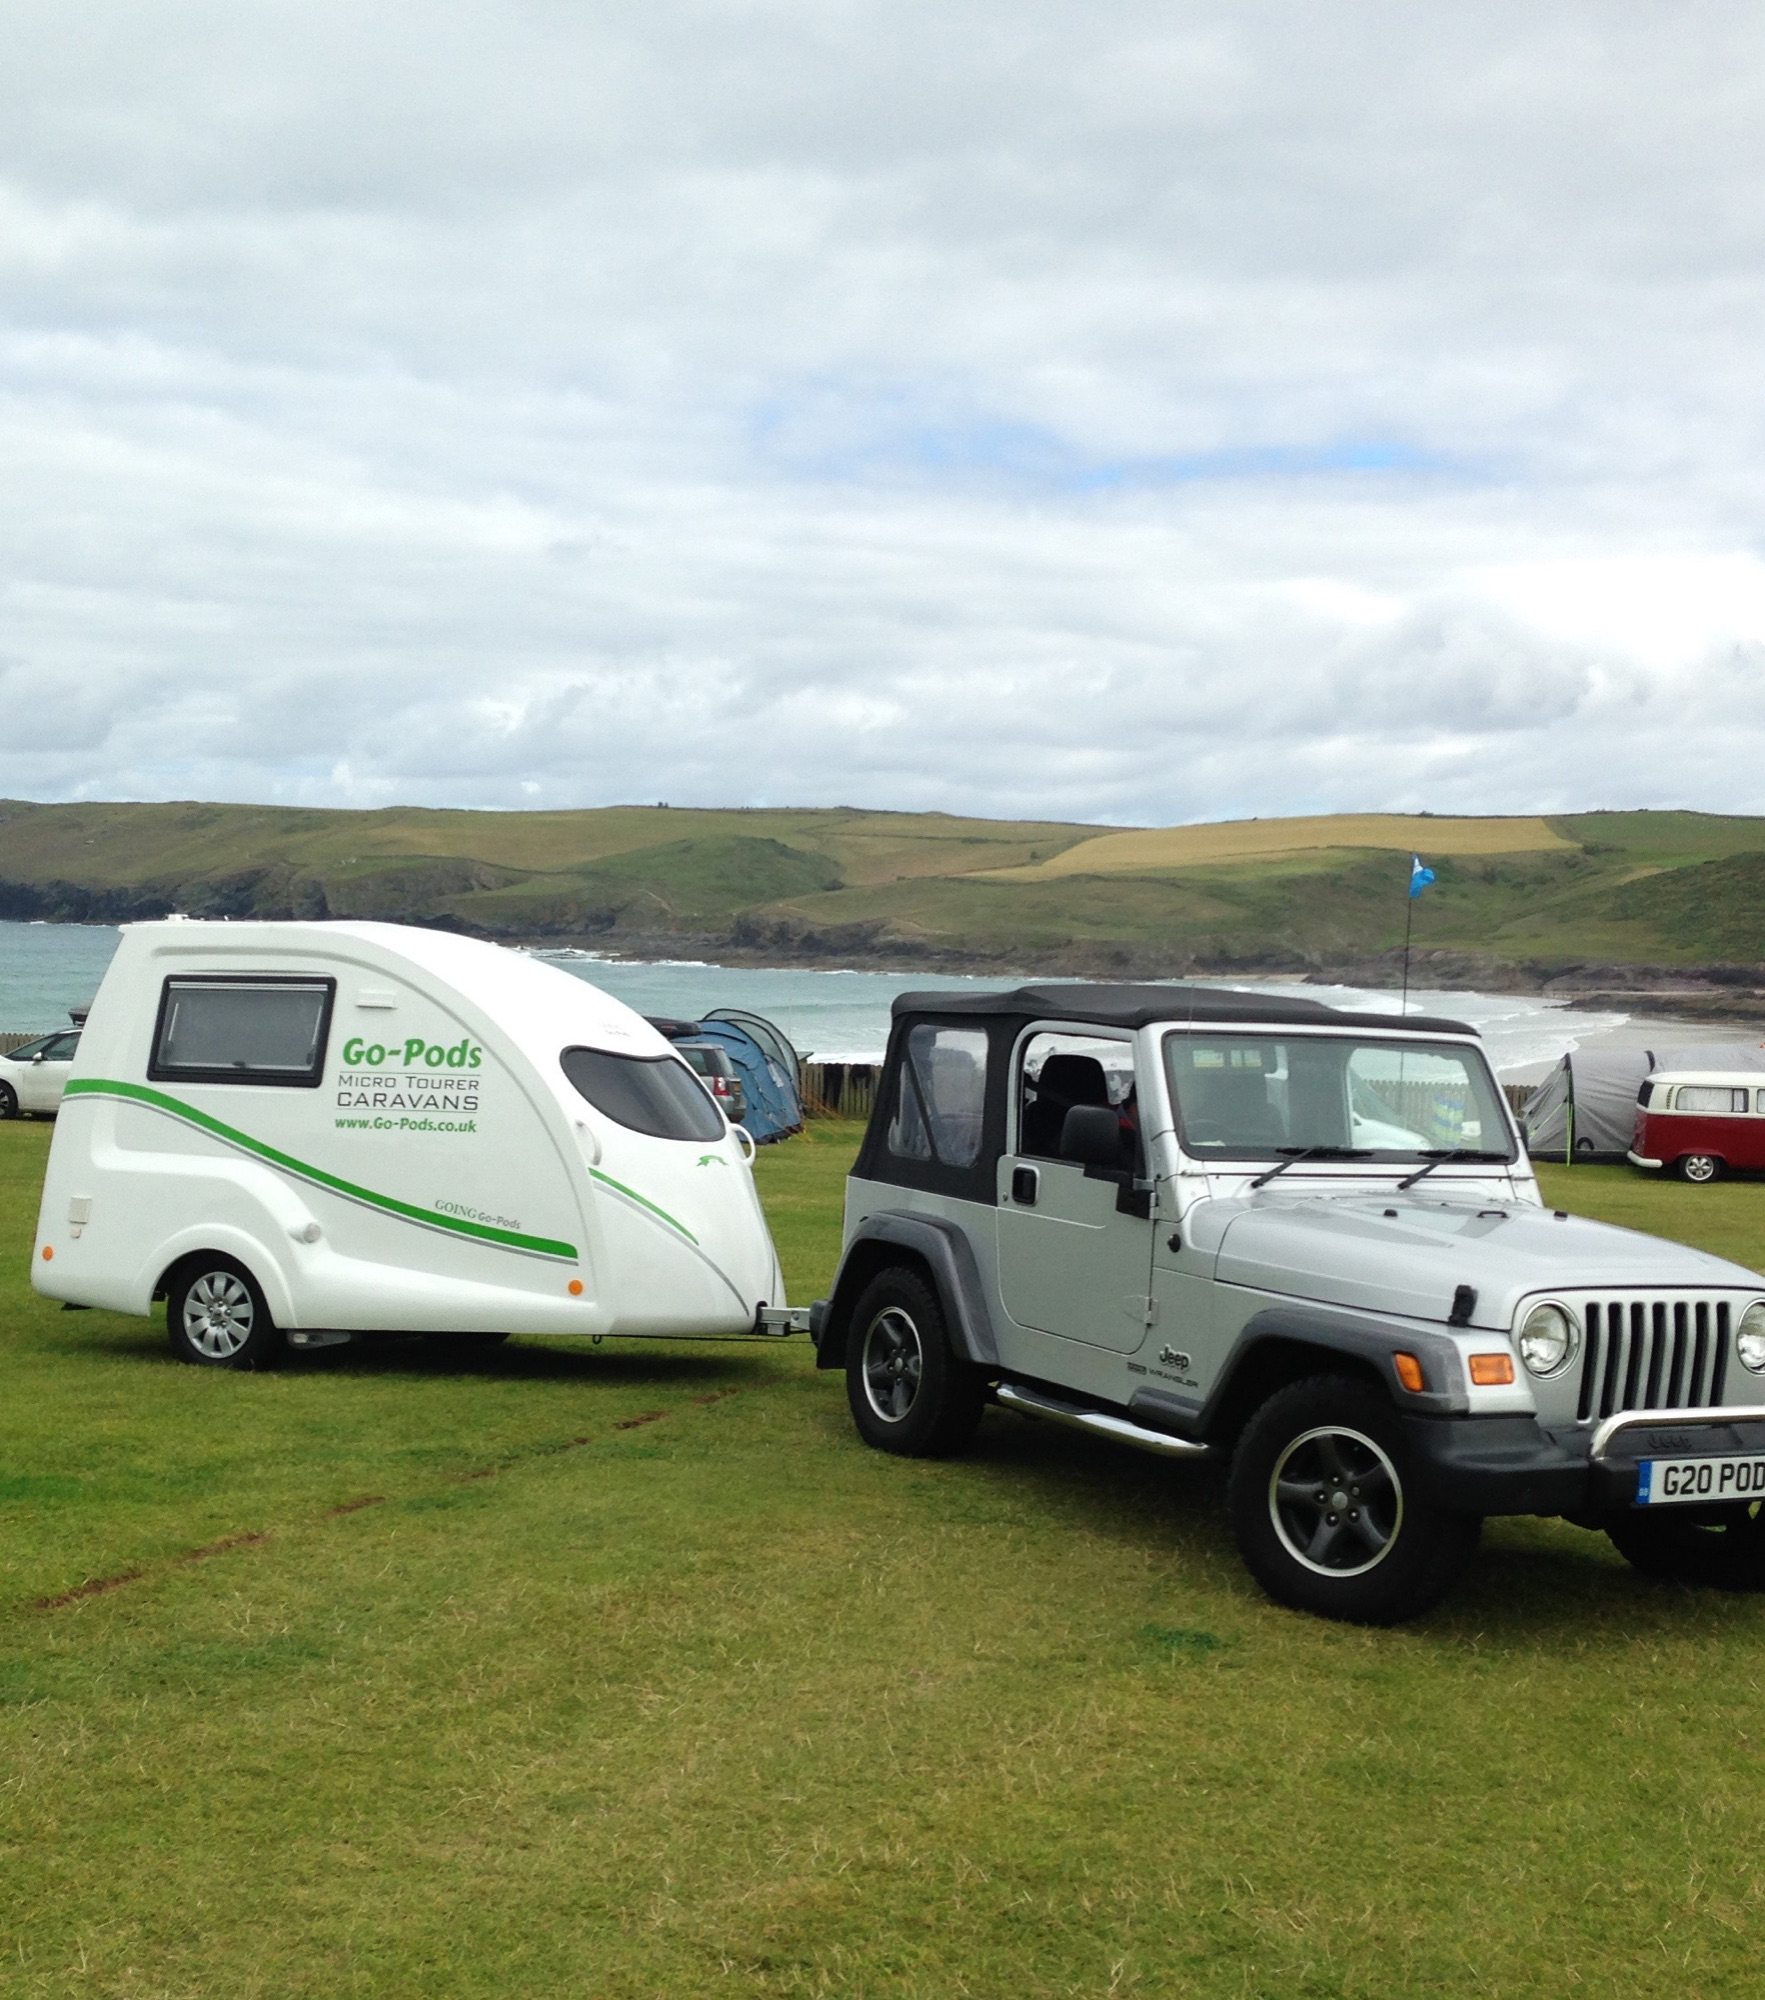 Go-Pods - the contemporary light touring caravan